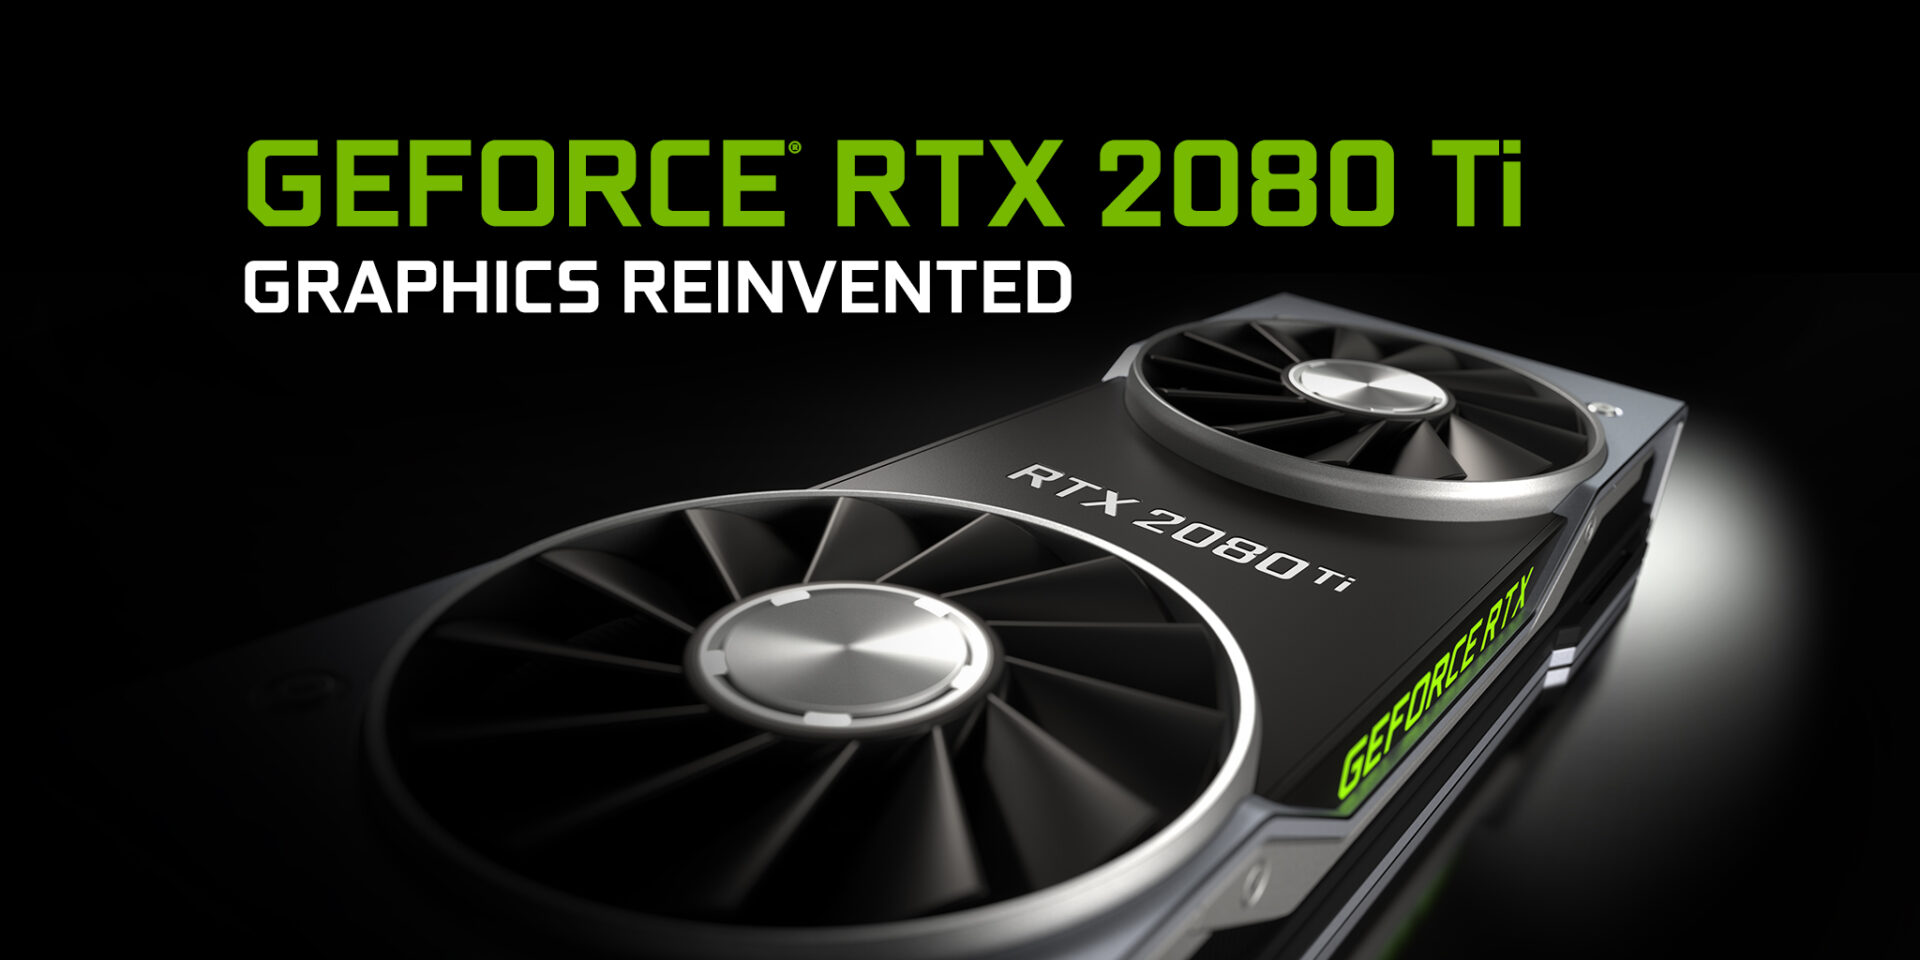 Nvidia RTX 2080 Ti Graphics Cards Are Dying